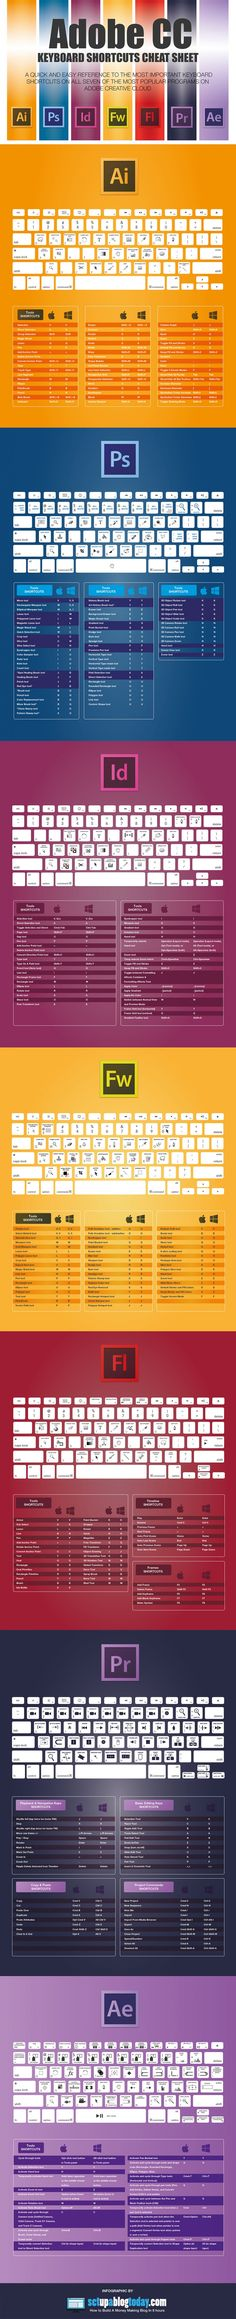 Shortcut Cheat Sheet für #Photoshop #AI usw...